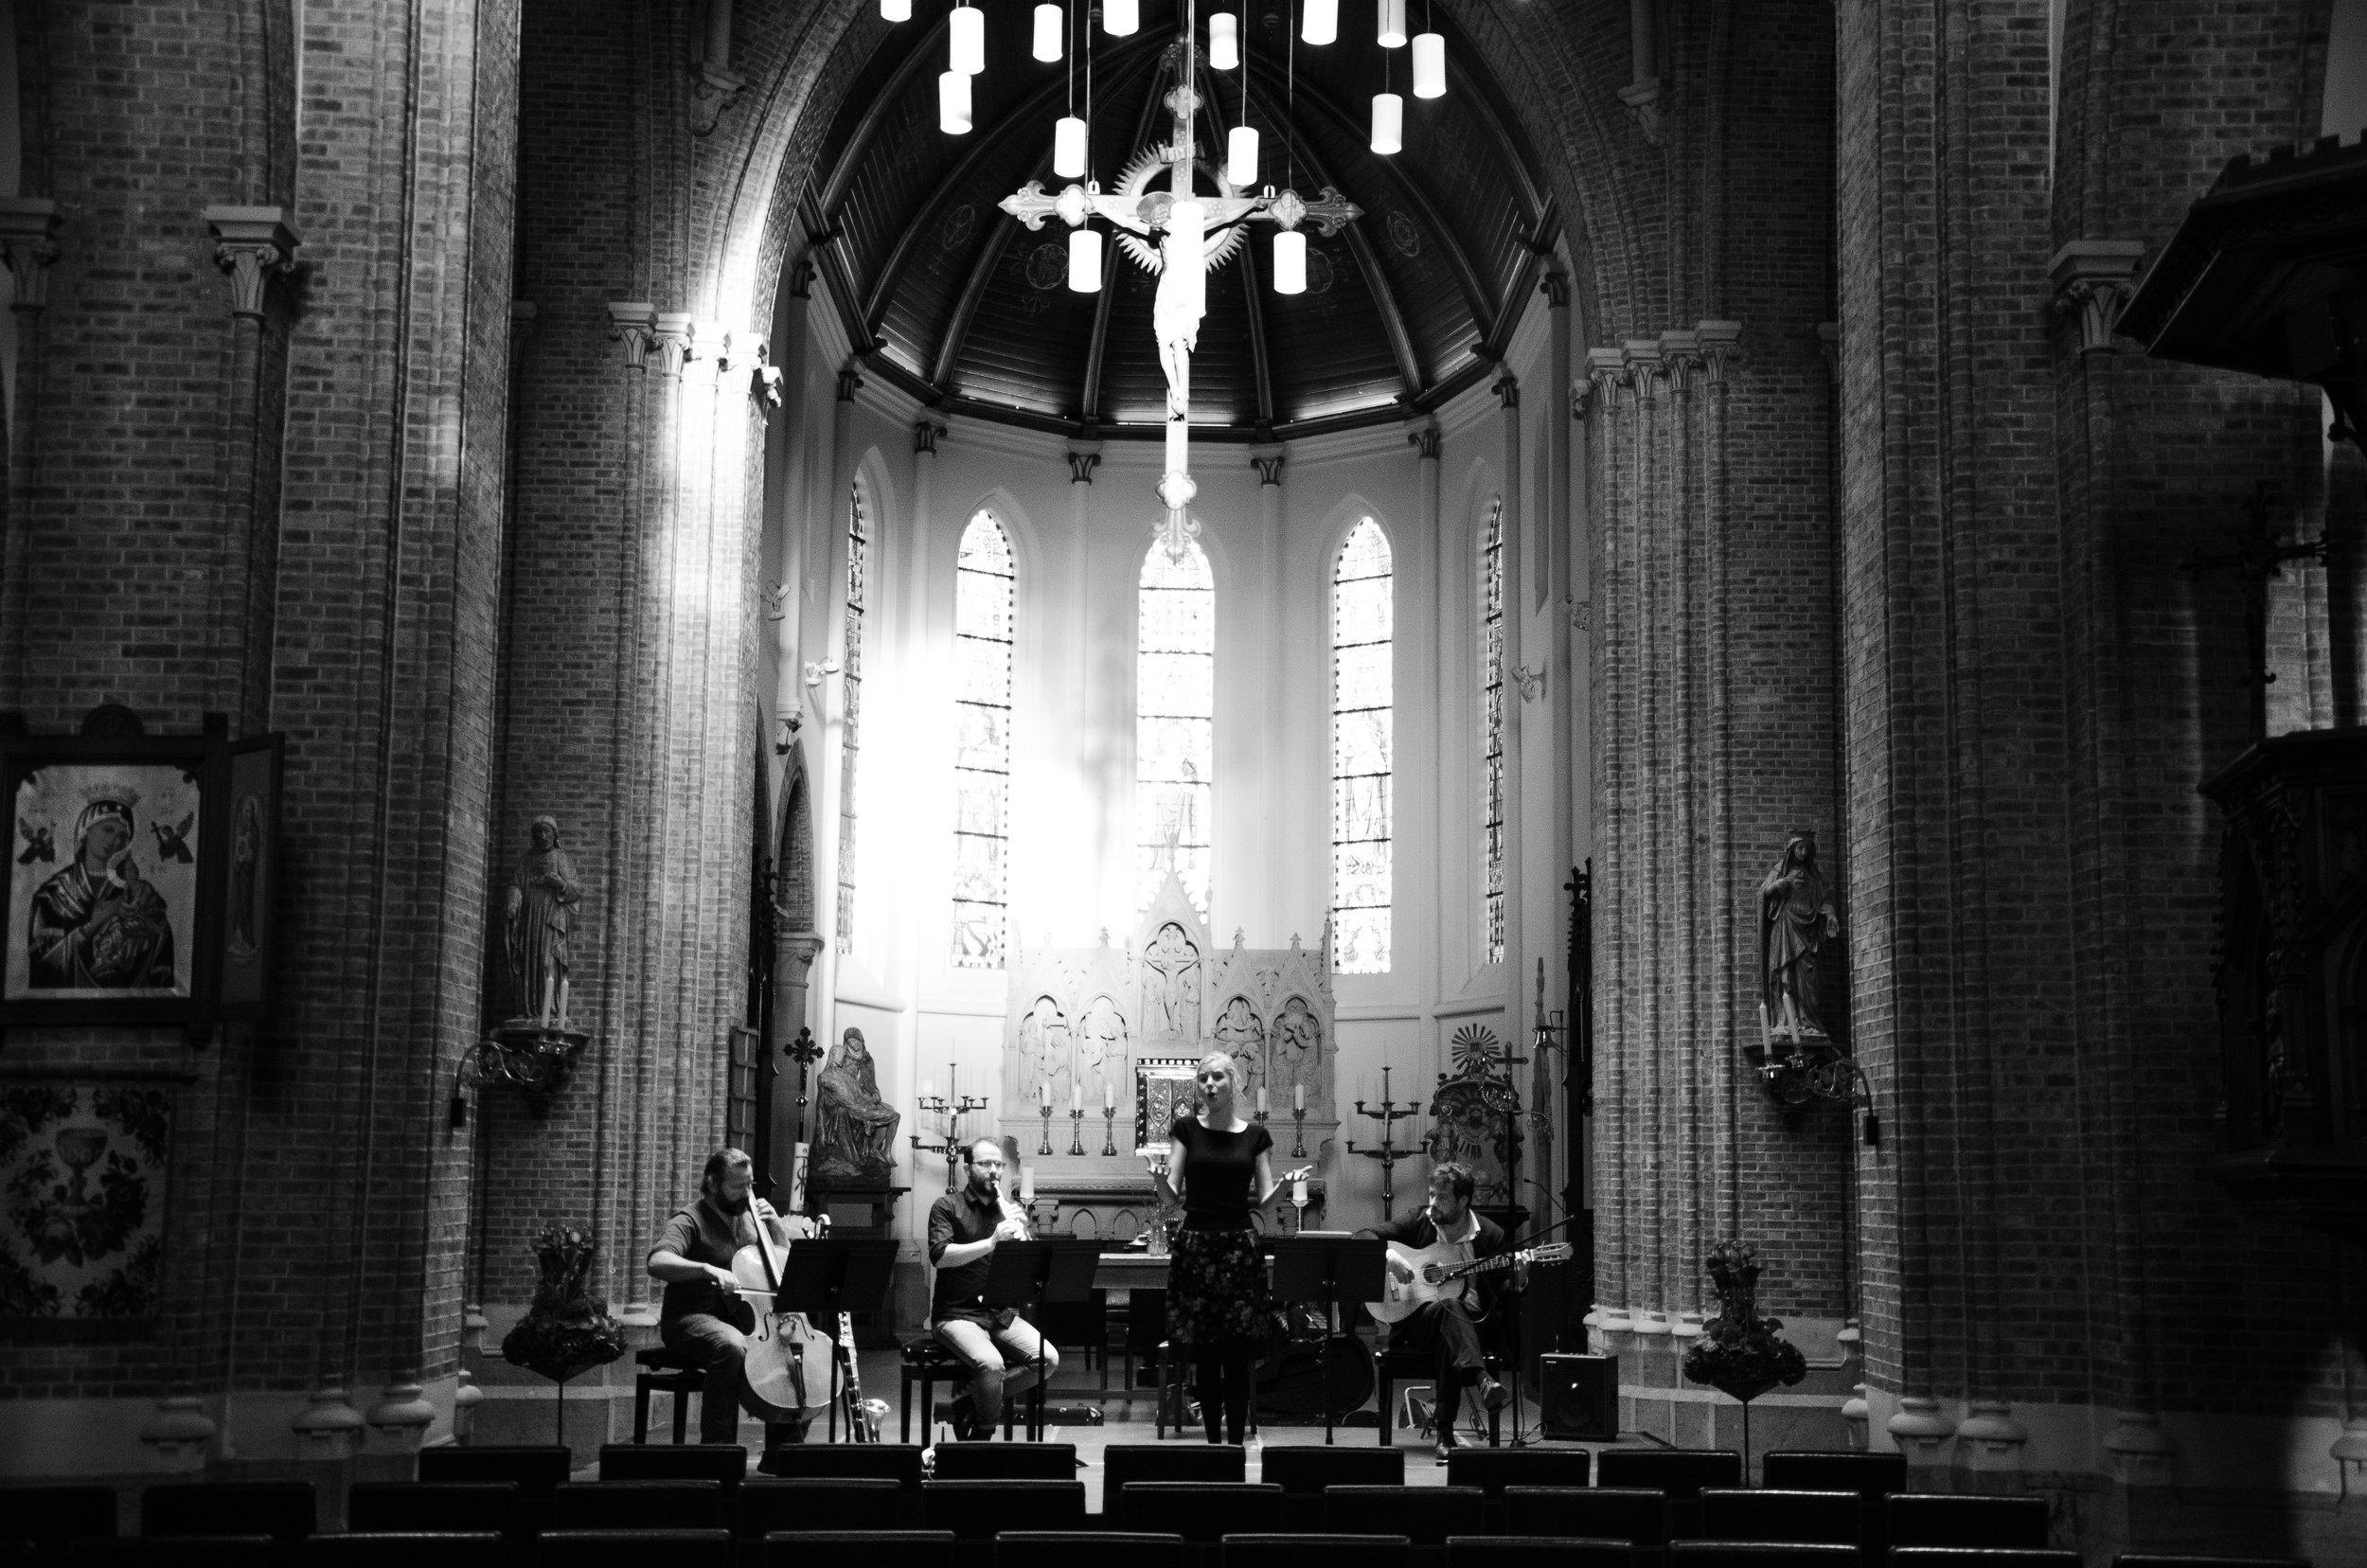 First of three concerts of Bel Ayre for Festival van Vlaanderen in Deinze